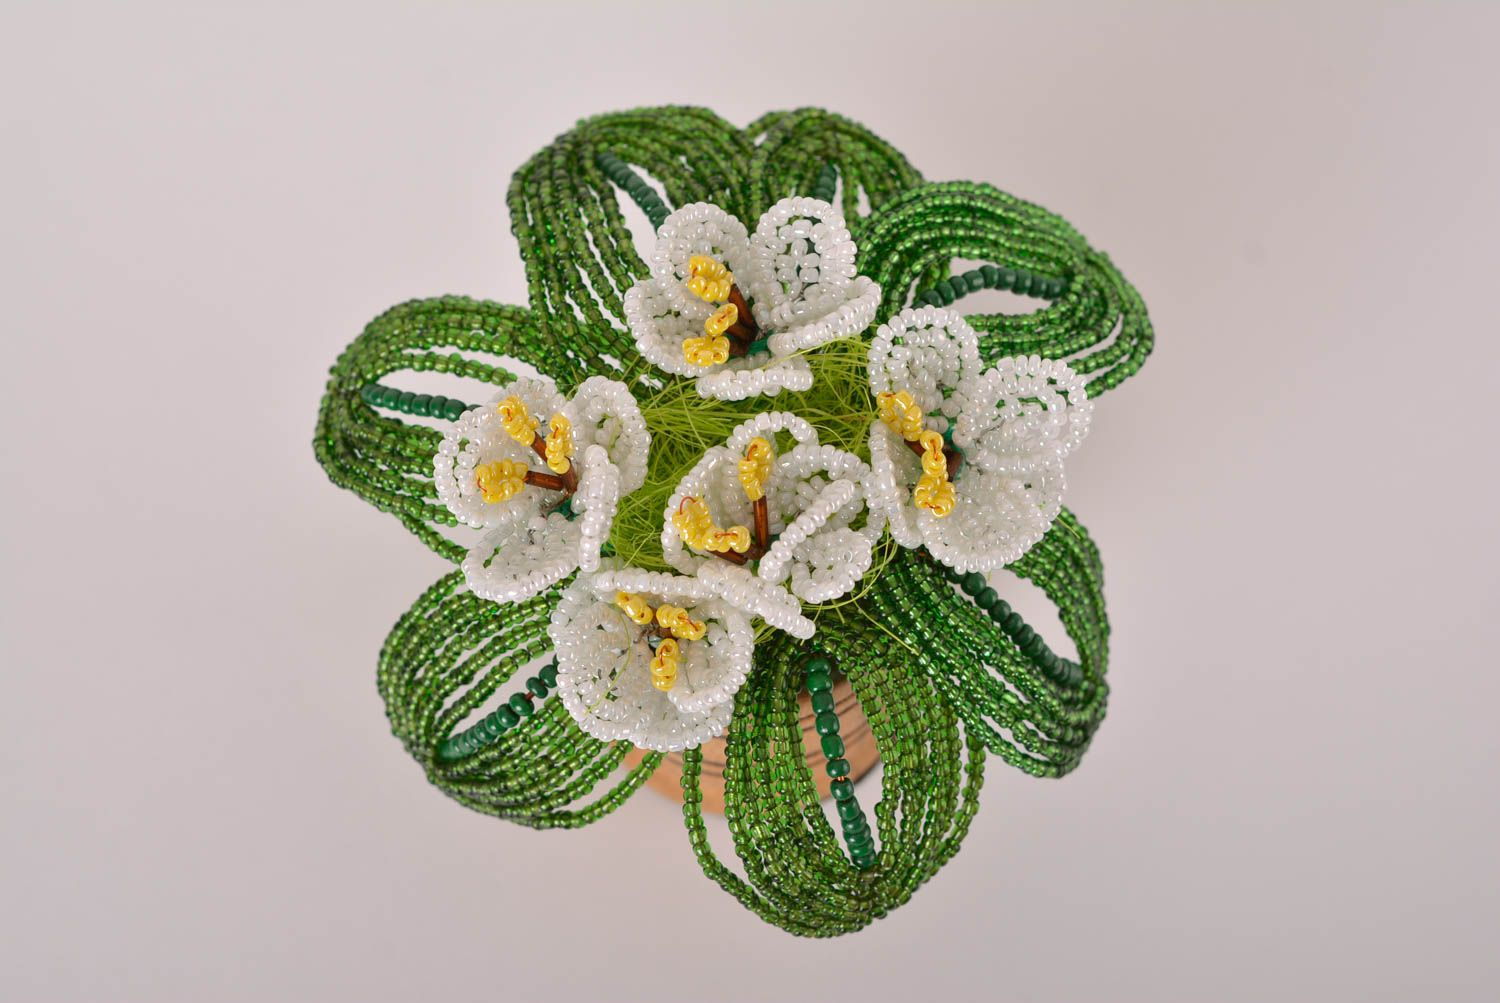 Beaded flowers handmade artificial flowers for decorative use only cool gifts photo 4